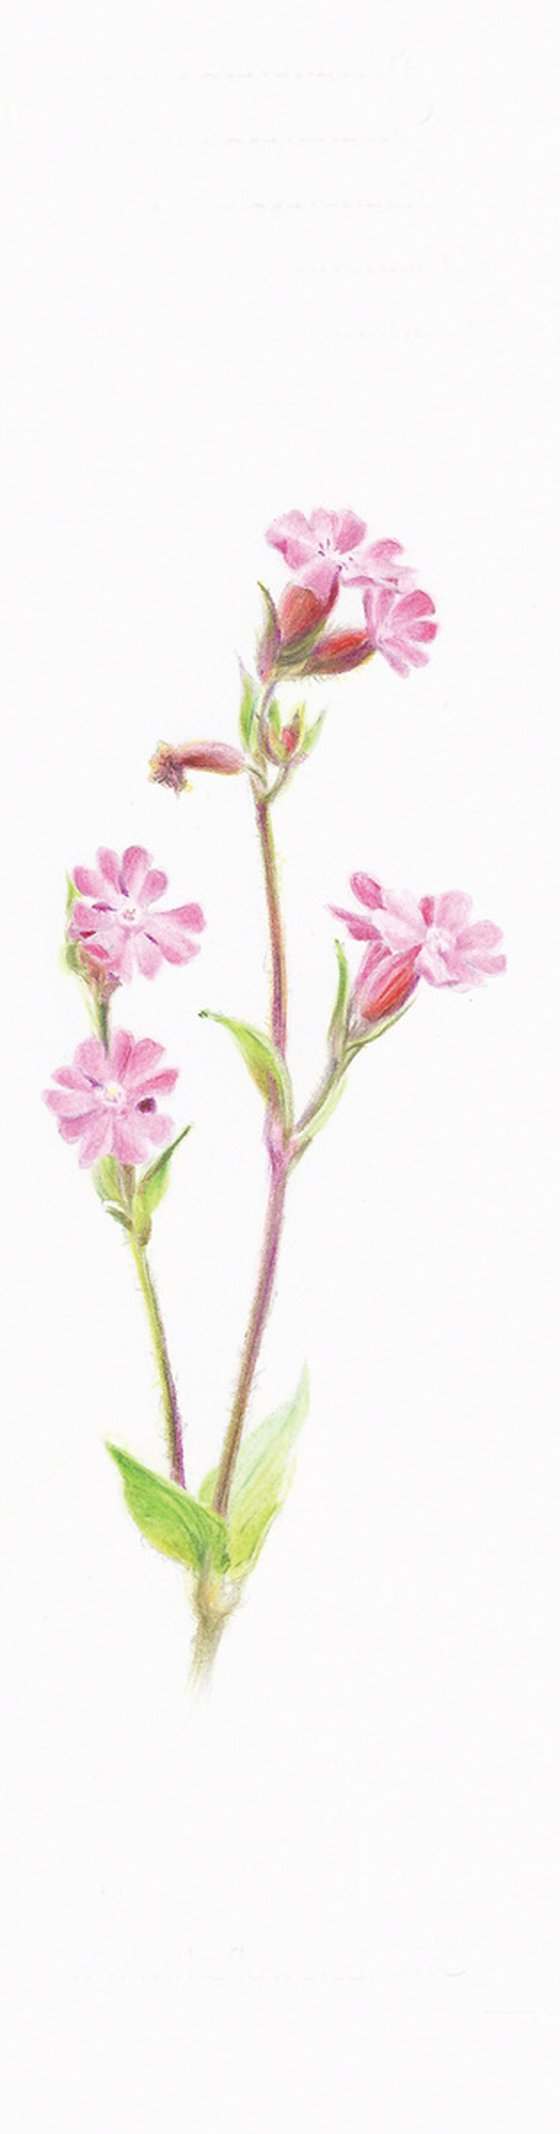 Wild Geranium - from my Wildflowers Bookmarks Collection